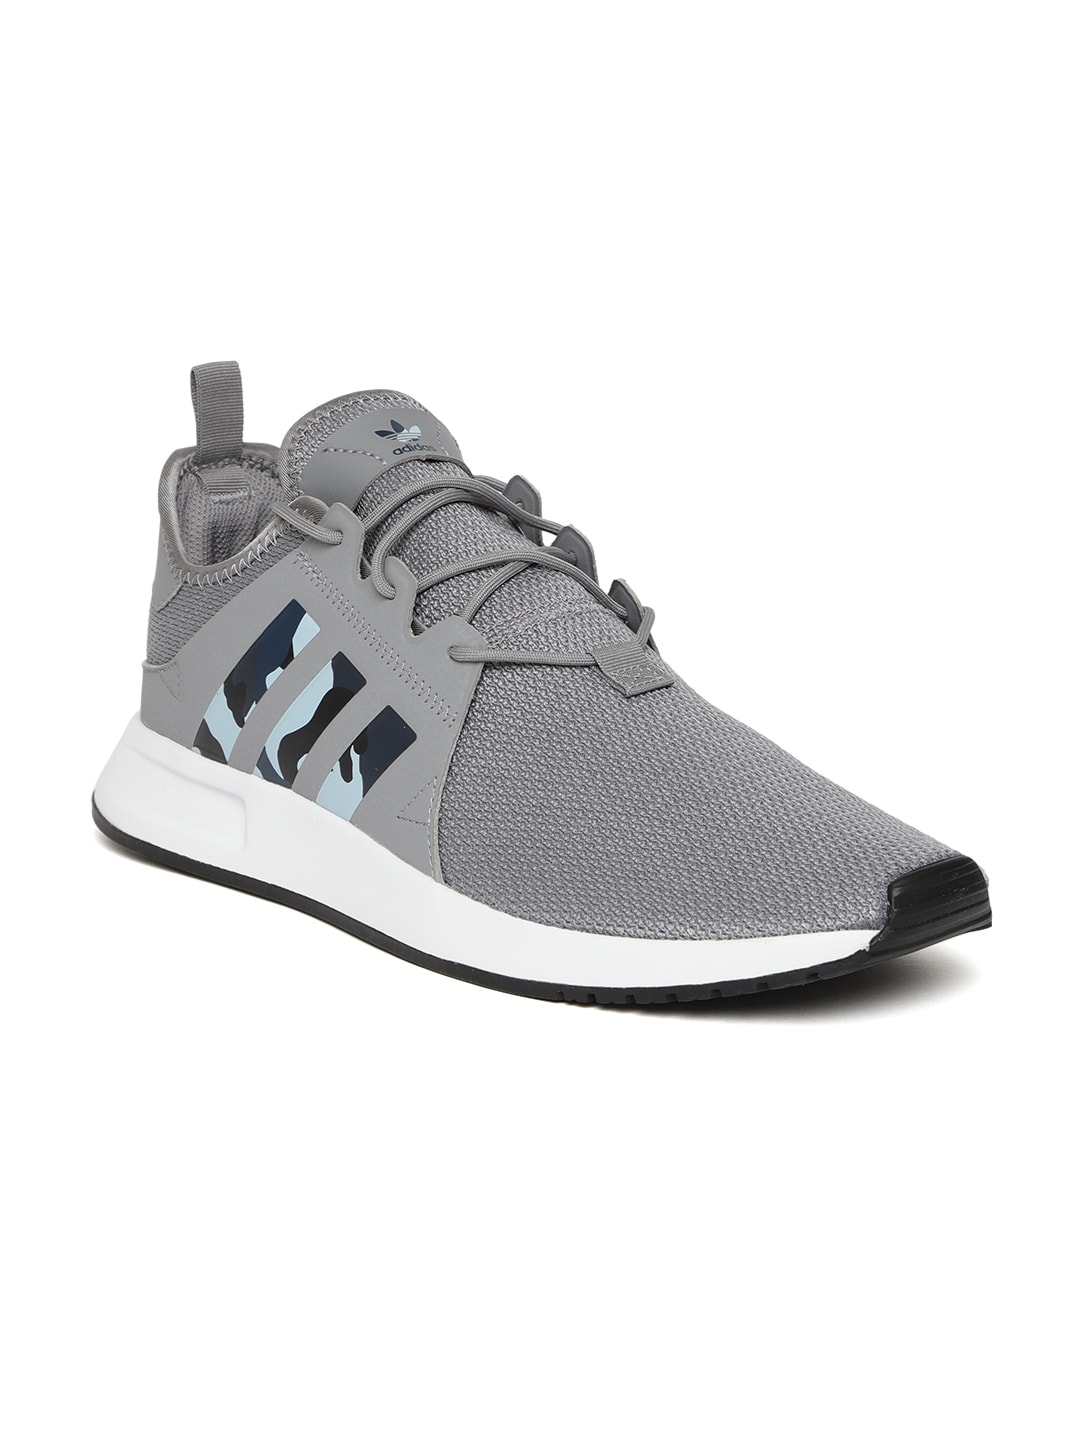 0fd86d458e2ef Adidas Reebok Nike Puma Lotto Men Shoes Casual - Buy Adidas Reebok Nike  Puma Lotto Men Shoes Casual online in India